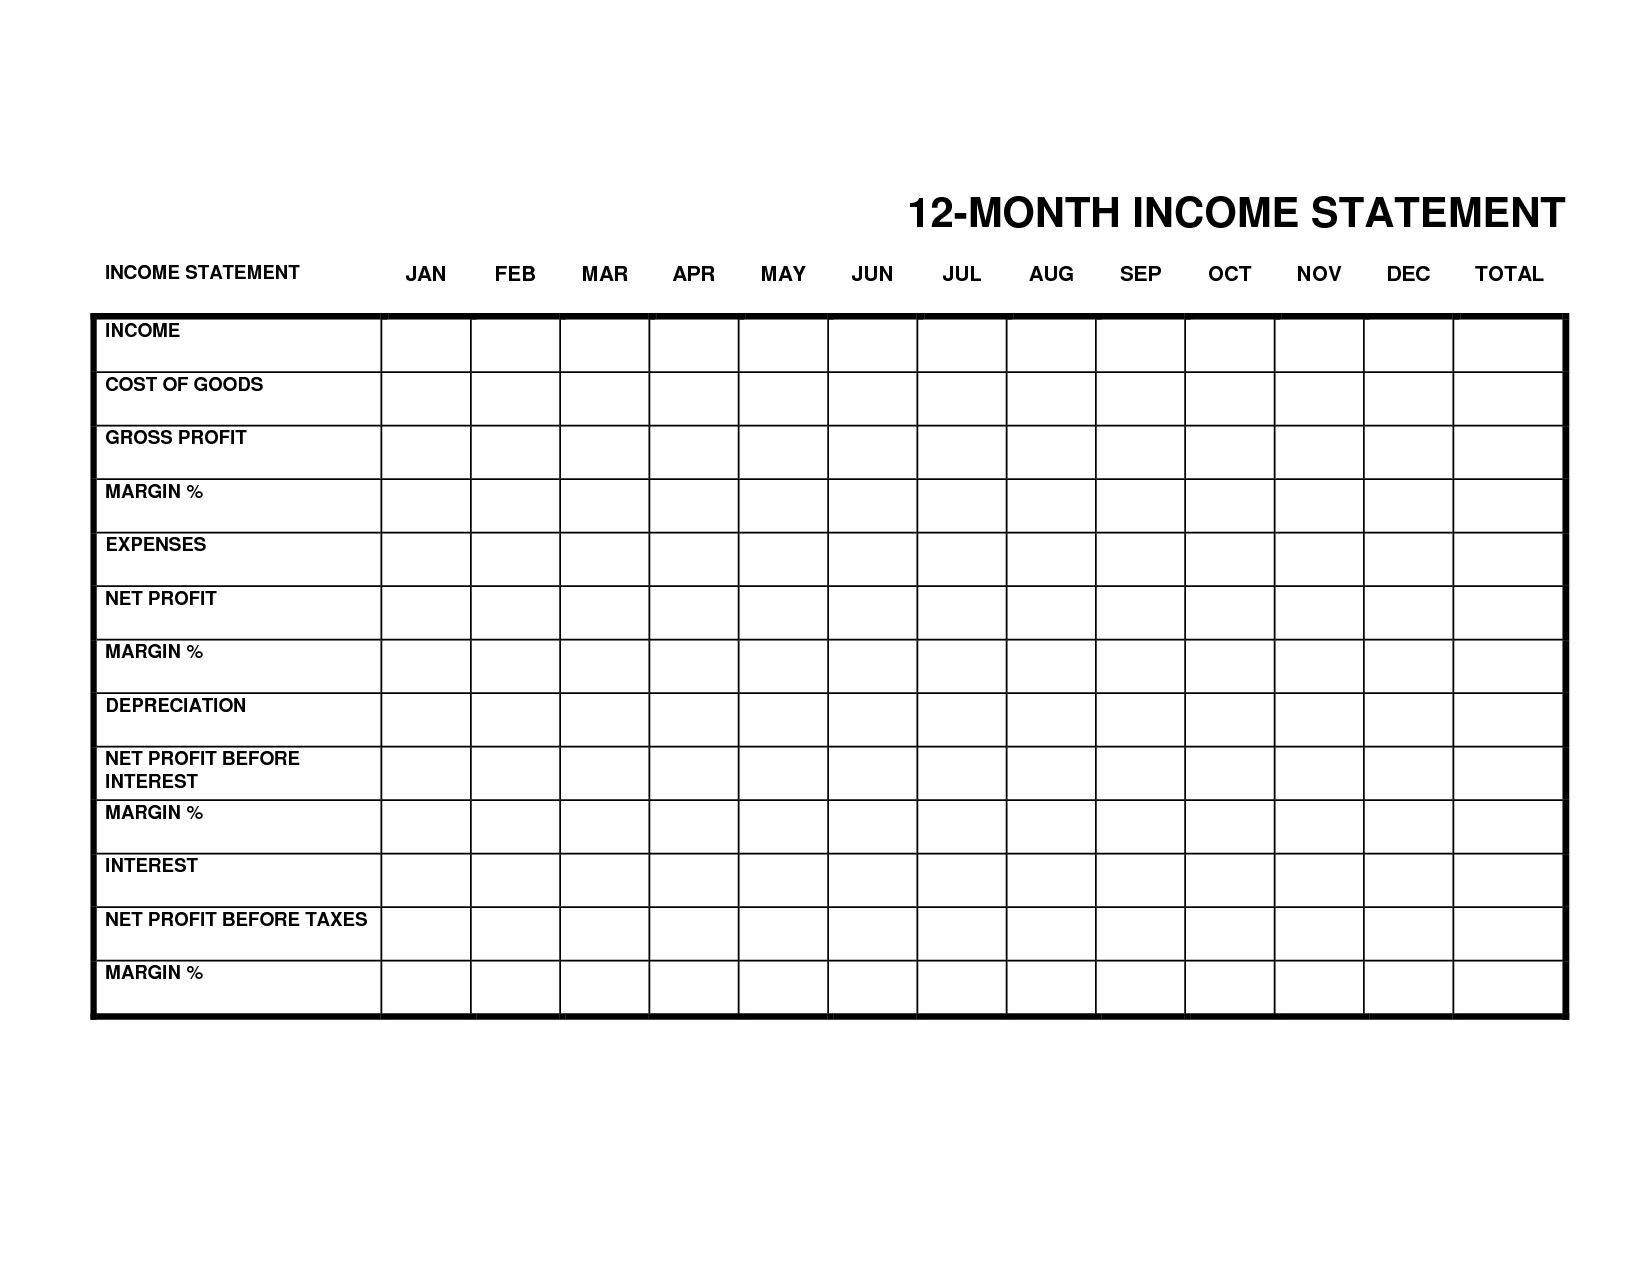 Monthly Income Statement Template Excel - Resourcesaver inside Monthly Income Statement